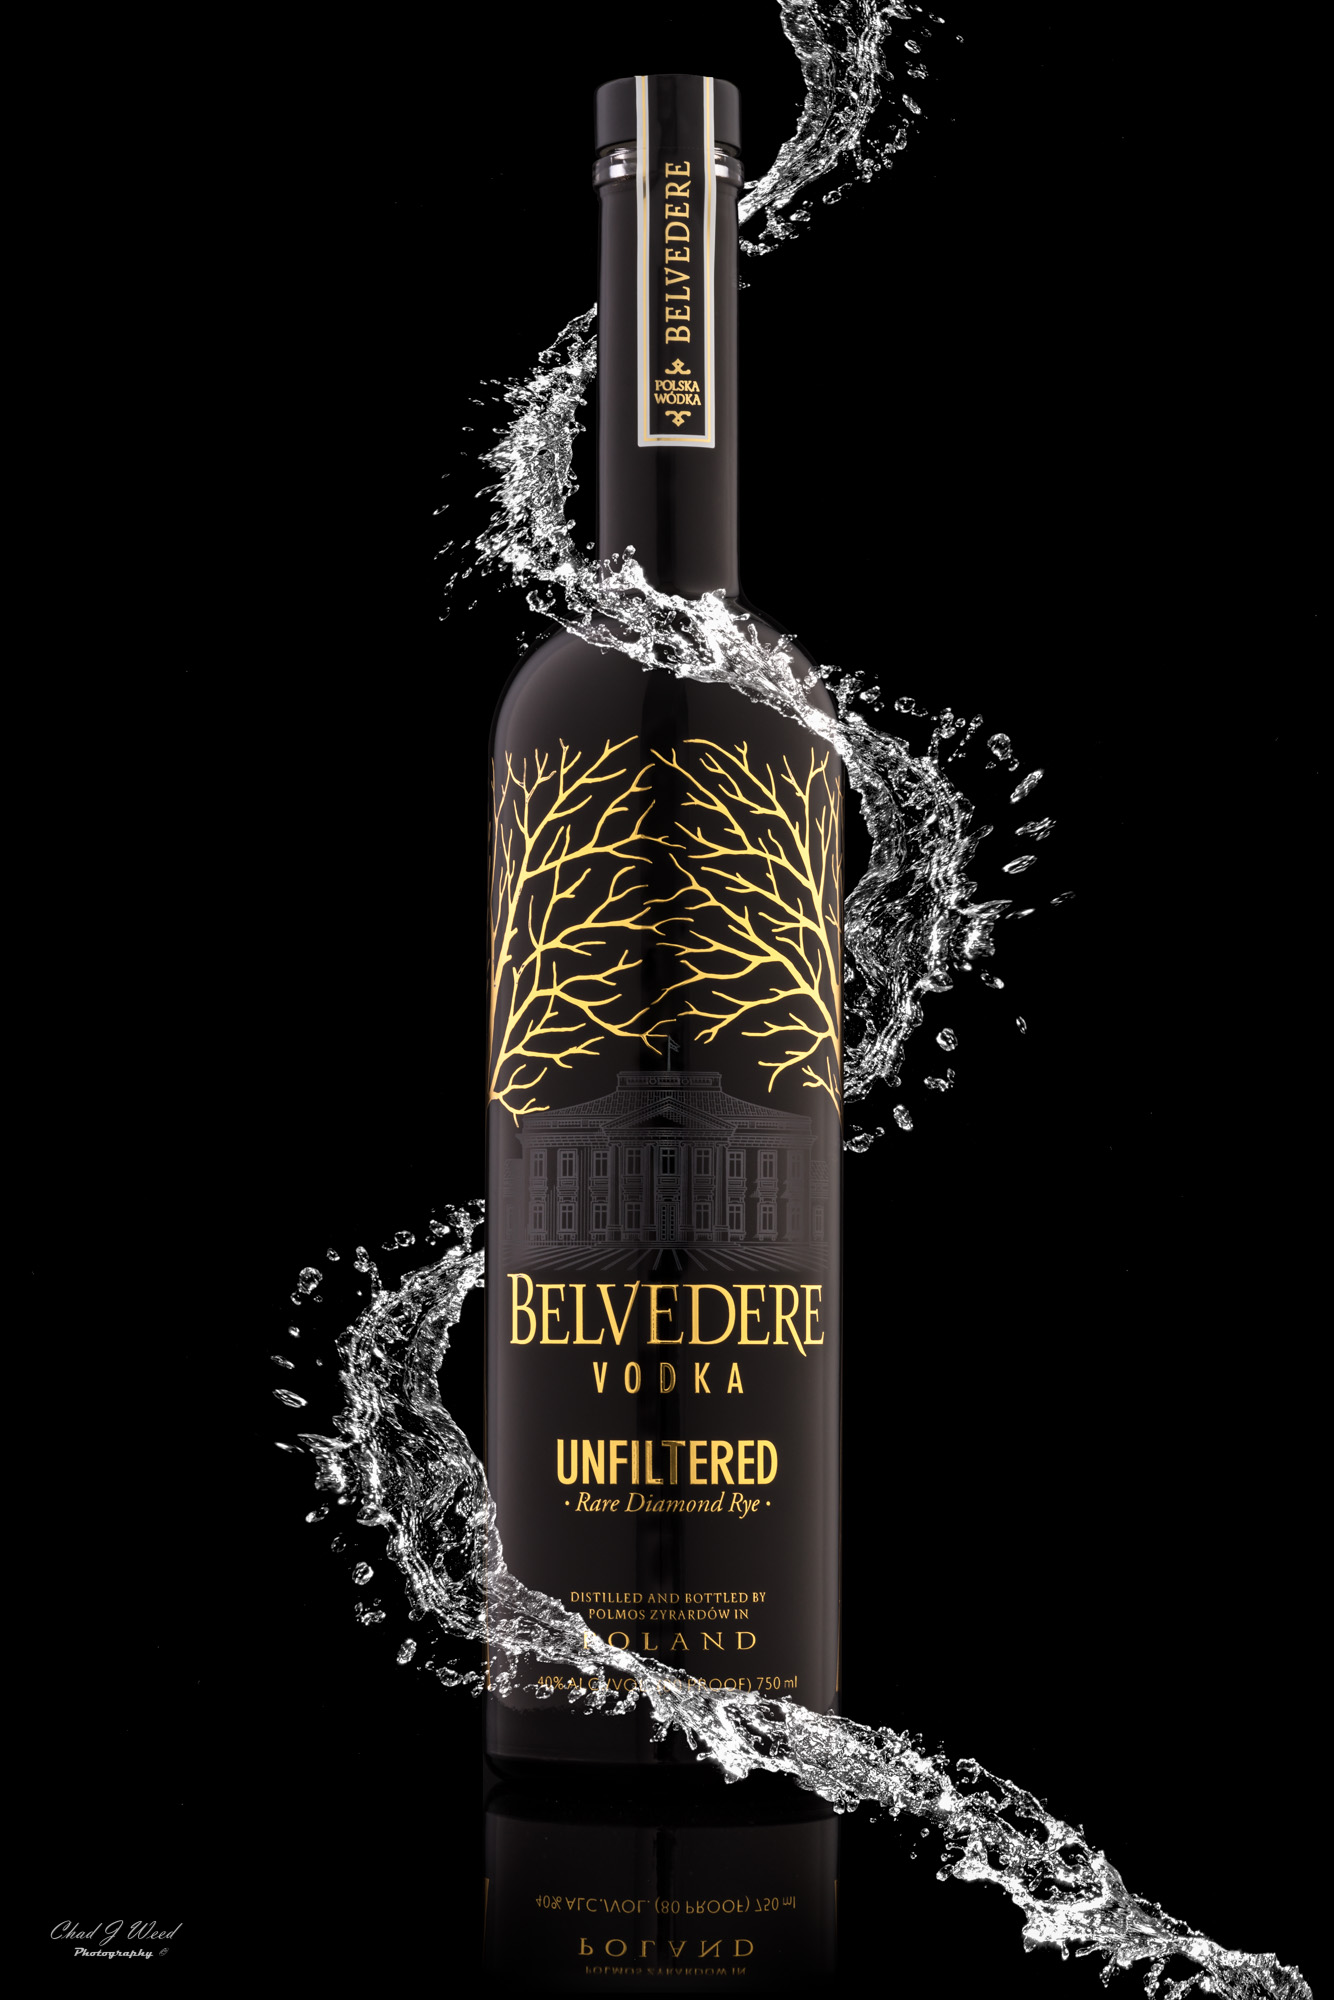 Belvedere Vodka Splash | Arizona Commercial Beverage Photographer Chad J Weed